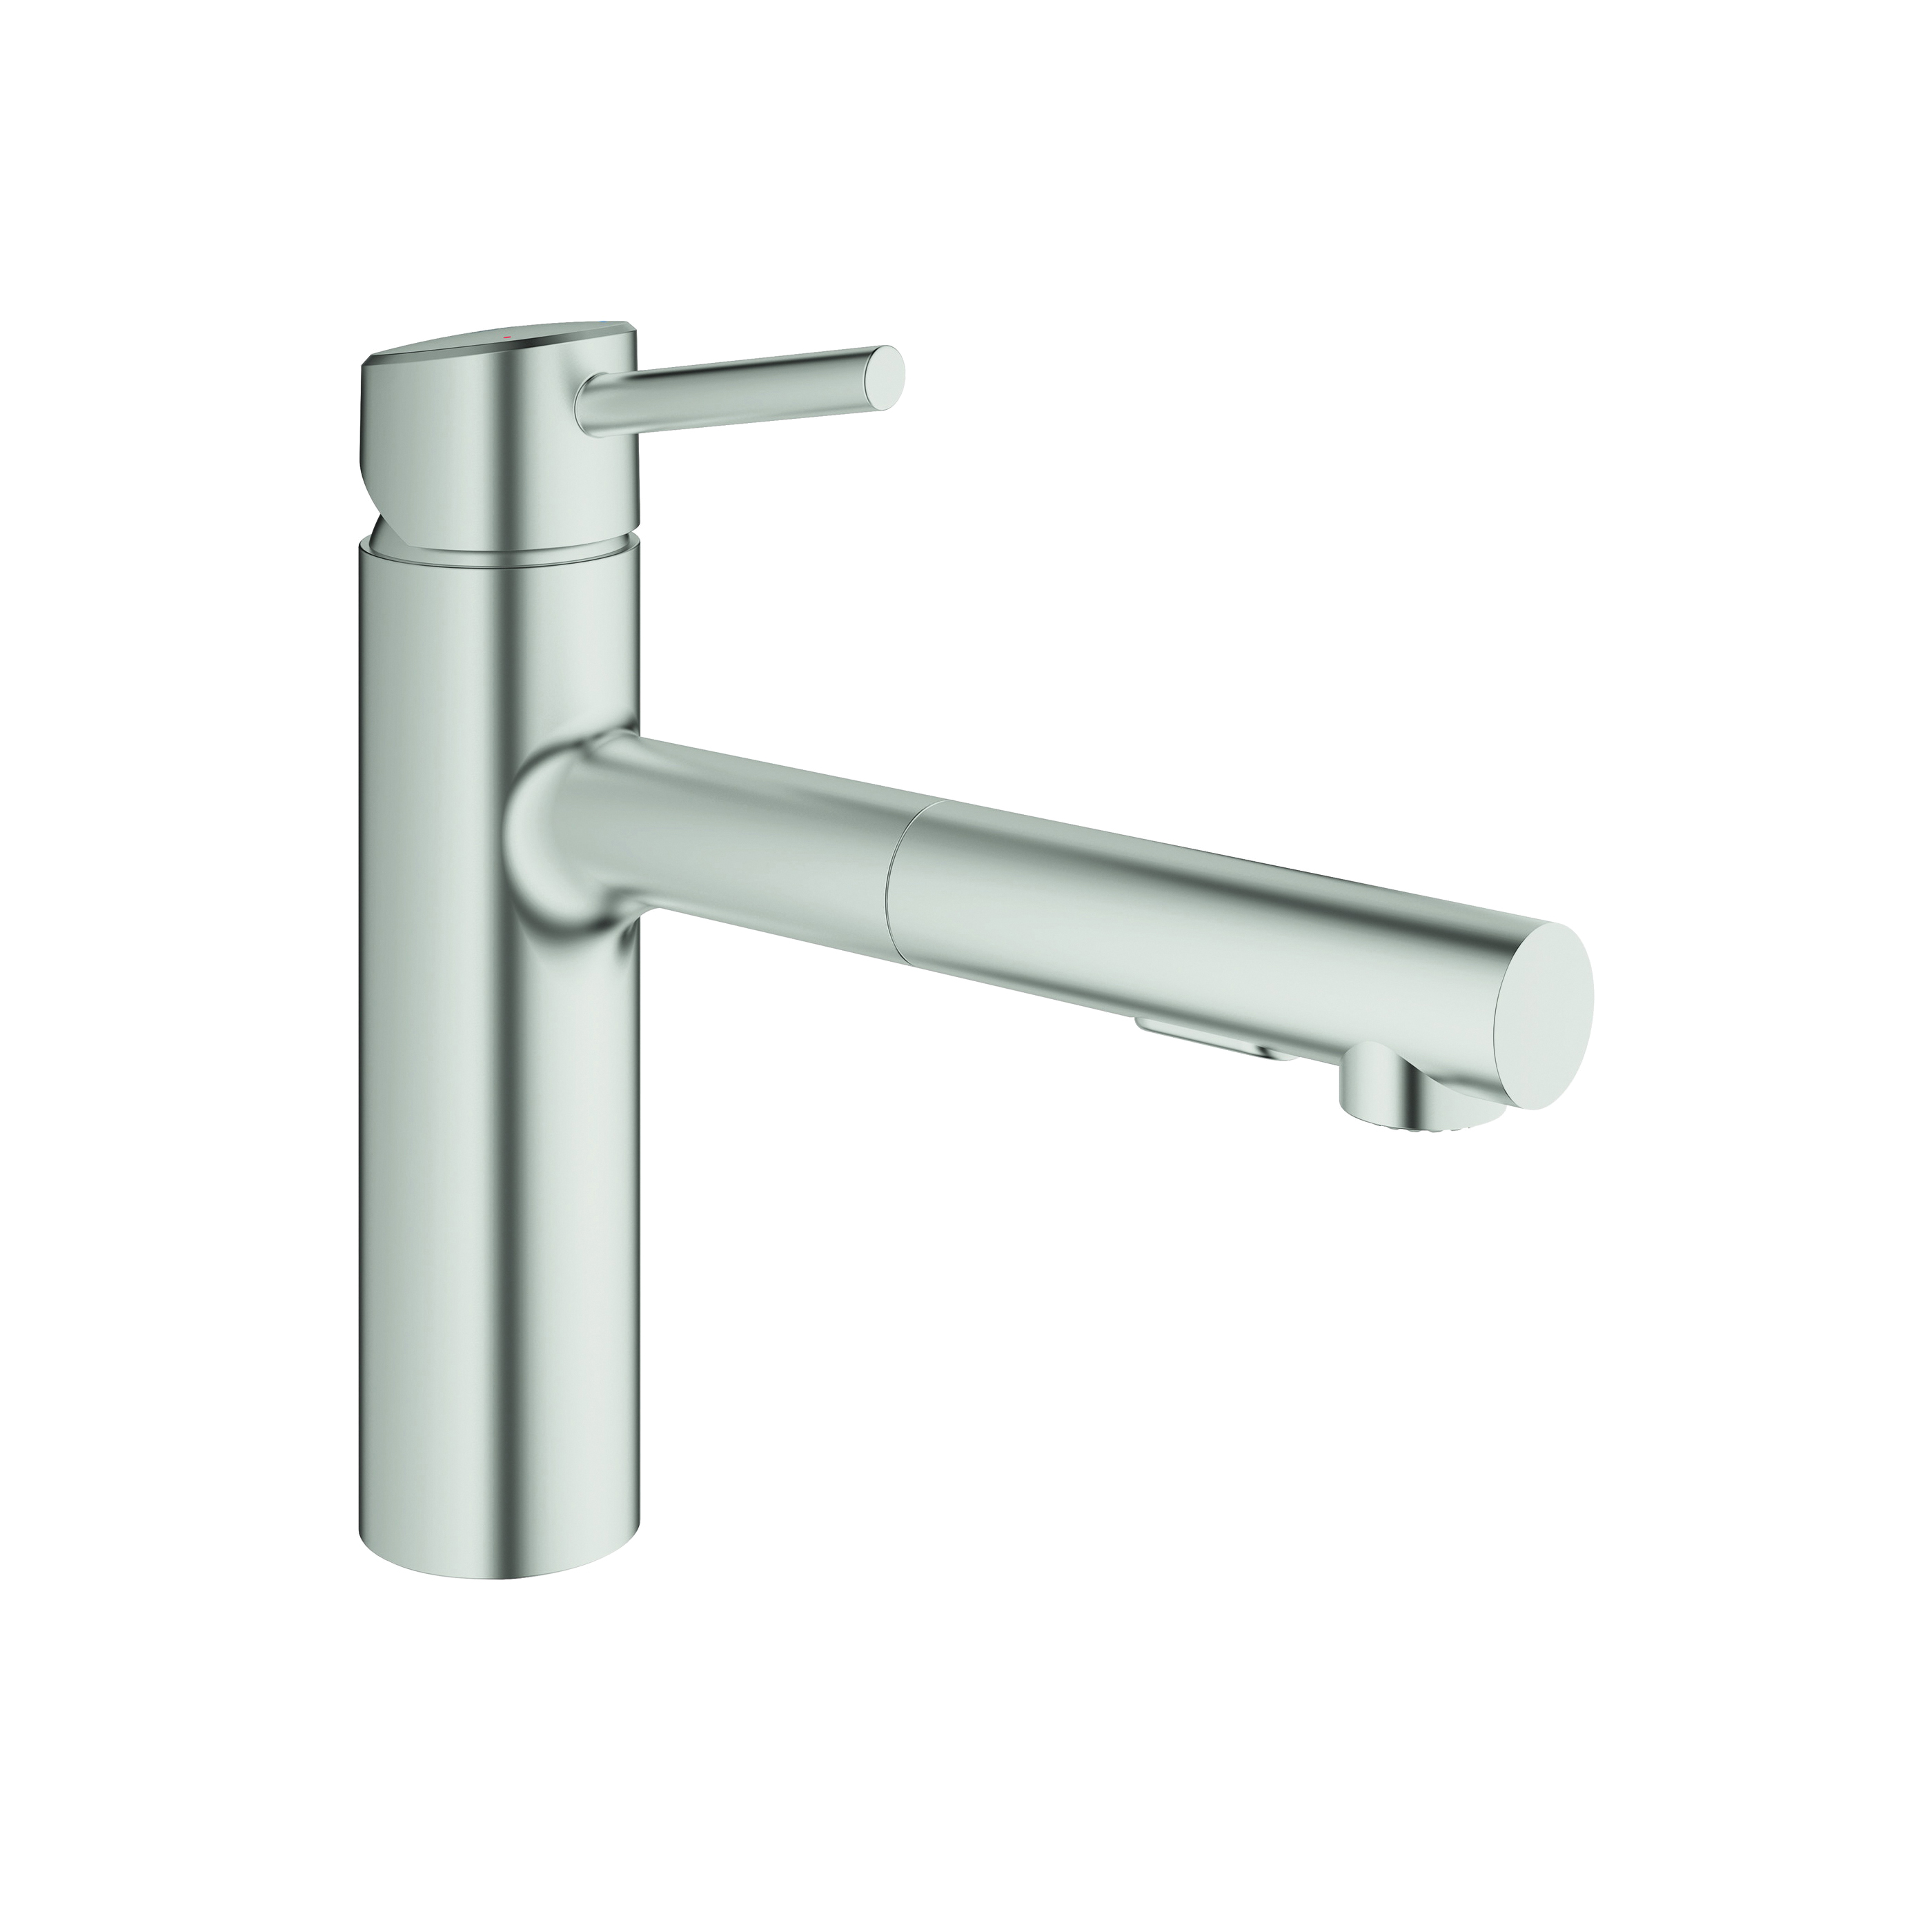 GROHE 31453DC1 Concetto Sink Mixer, 1.5 gpm, 1 Handle, SuperSteel, Import